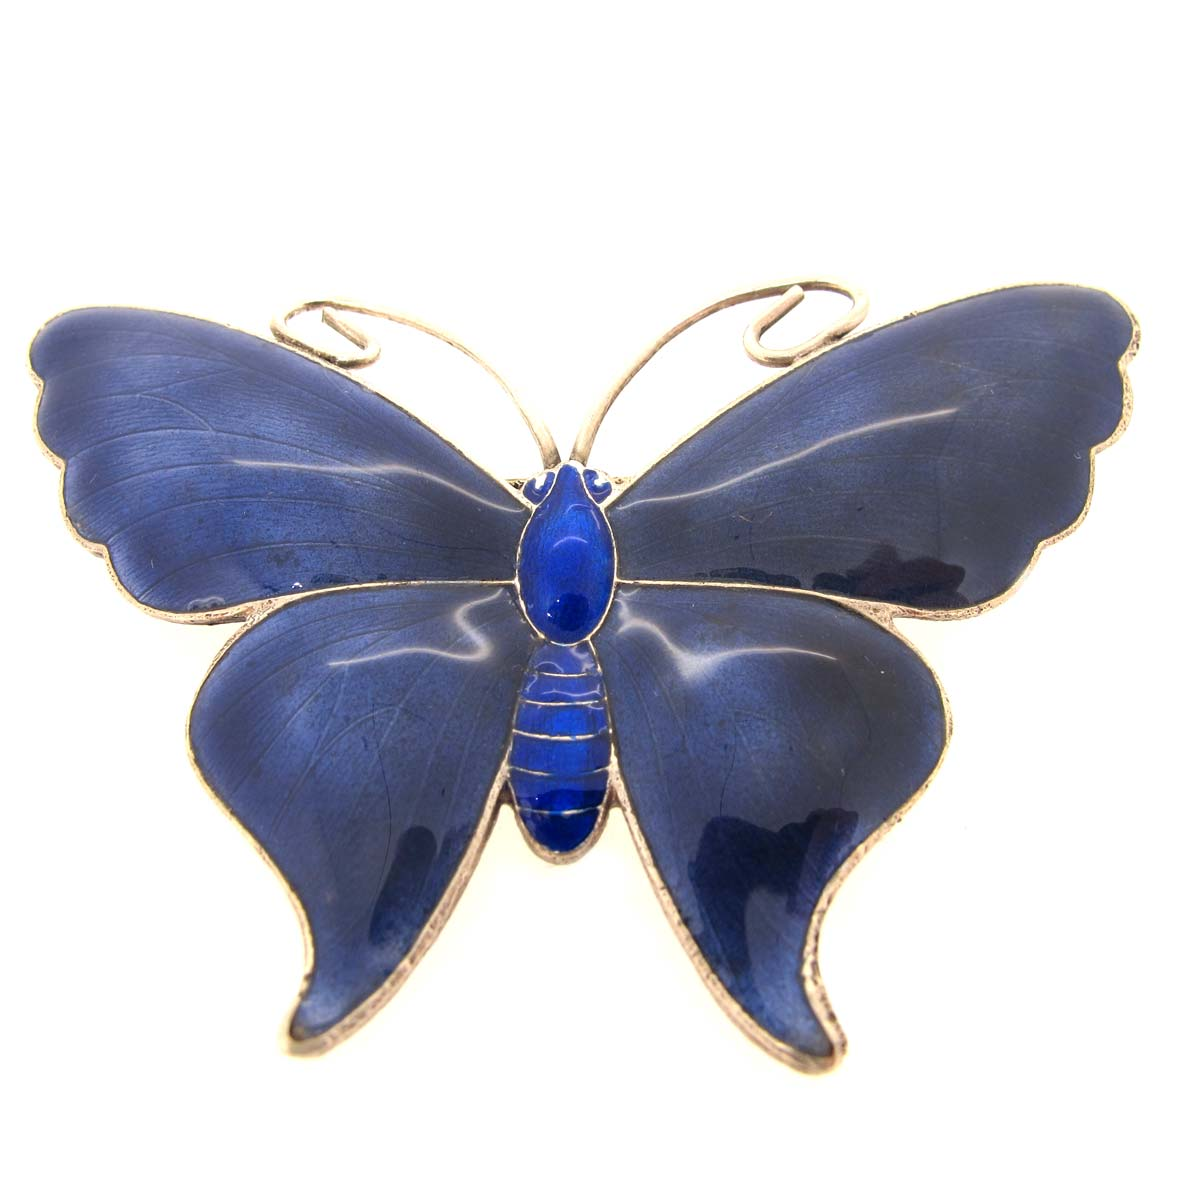 Antique silver and blue enamel butterfly brooch